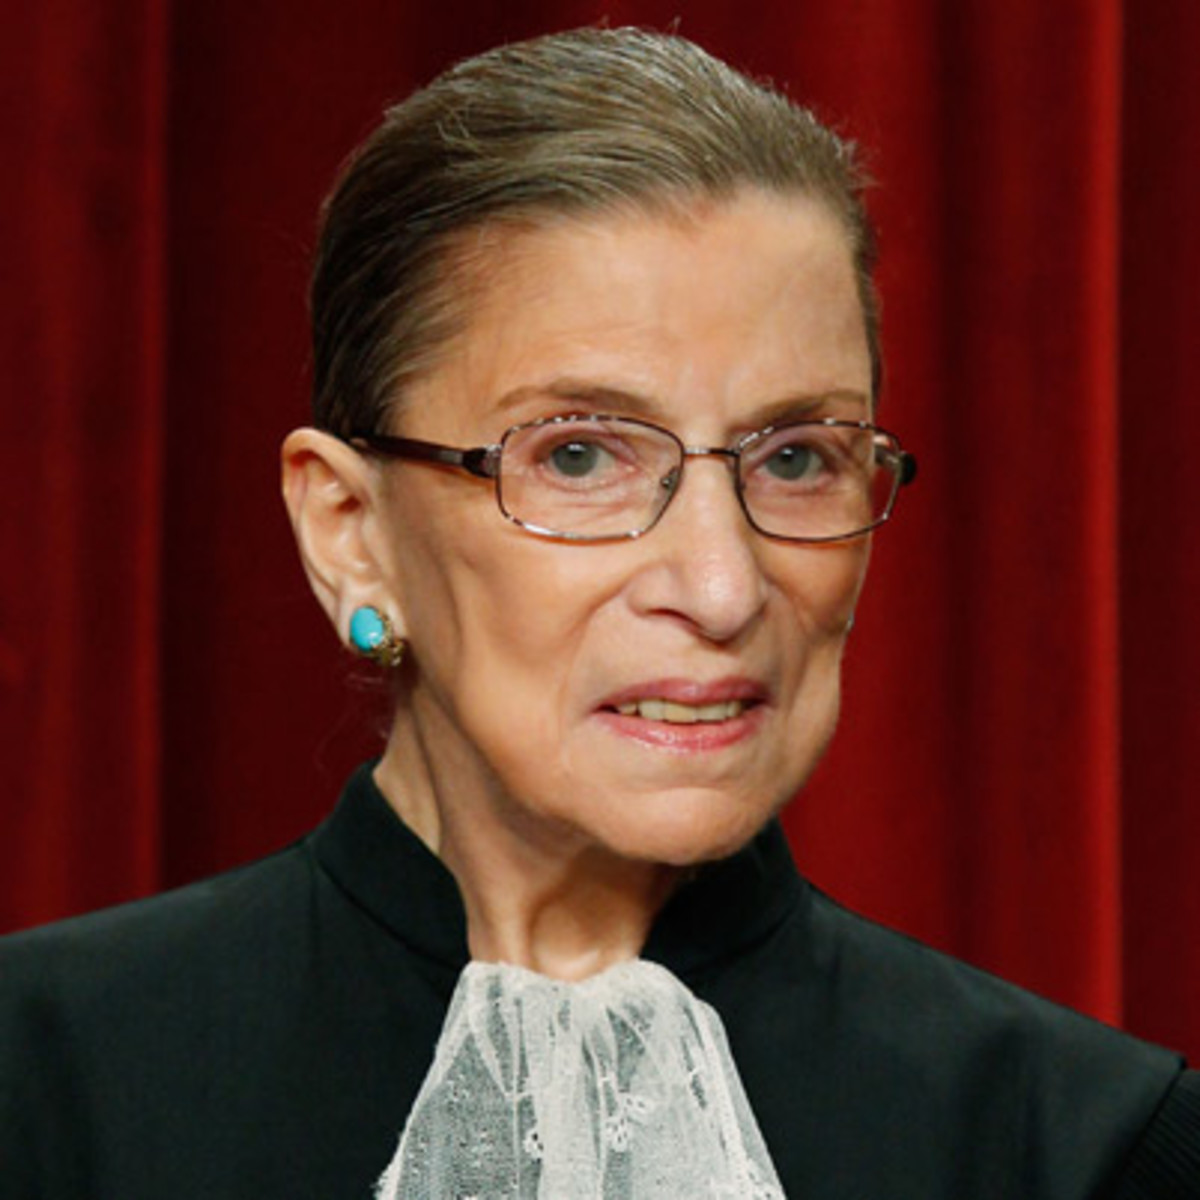 ruth bader ginsburg - photo #22